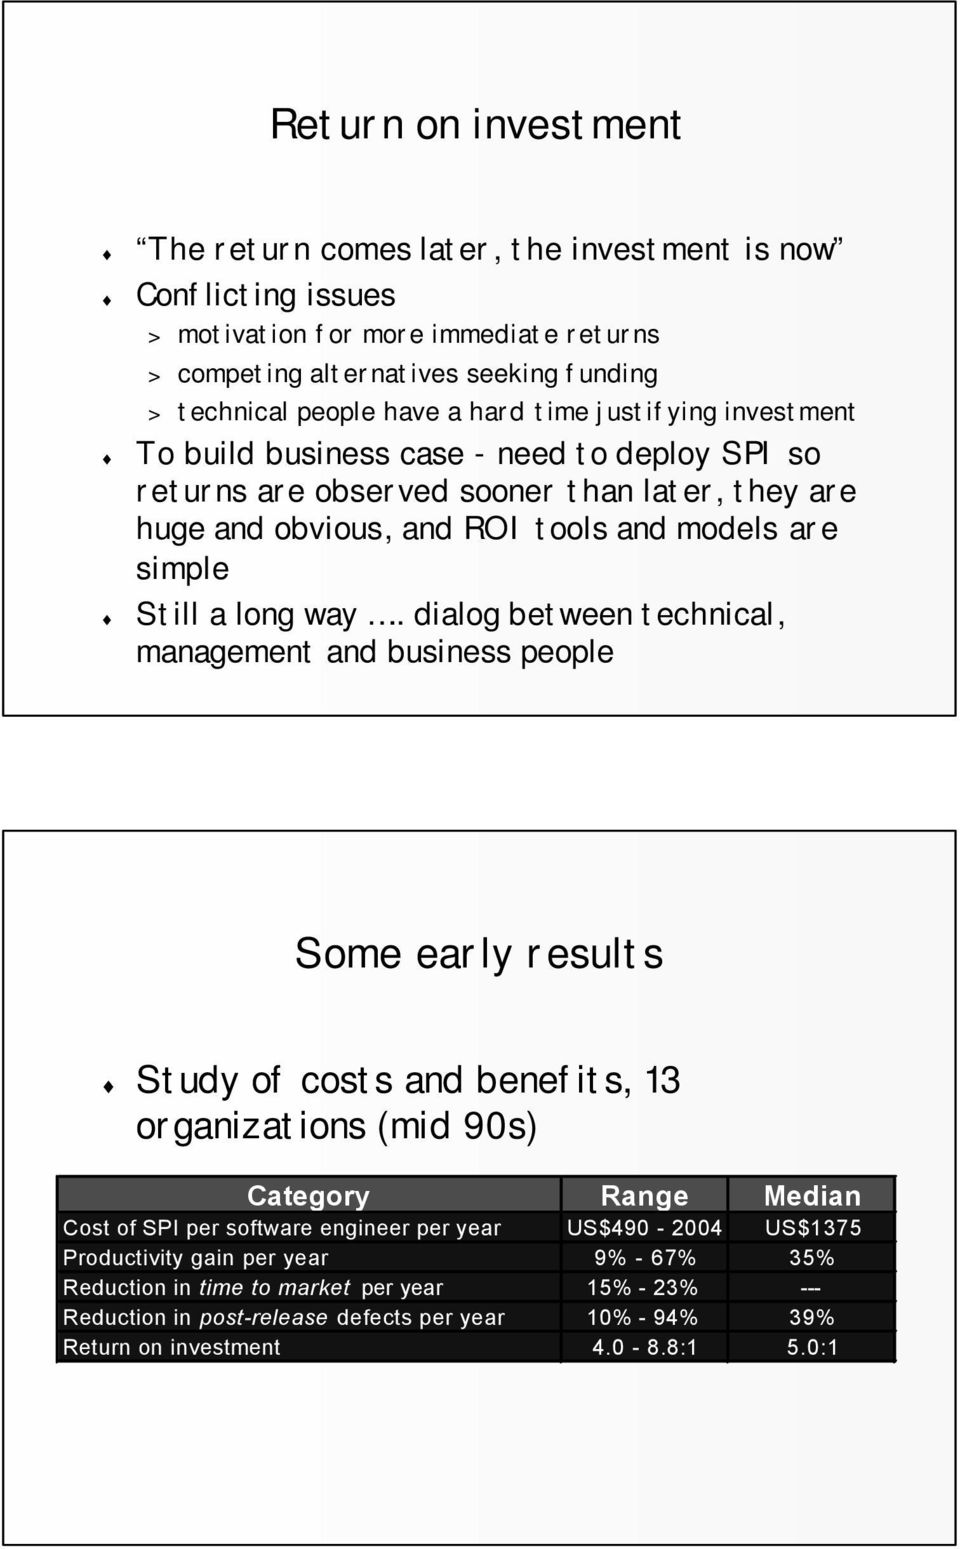 . dialog between technical, management and business people Some early results Study of costs and benefits, 13 organizations (mid 90s) Category Range Median Cost of SPI per software engineer per year